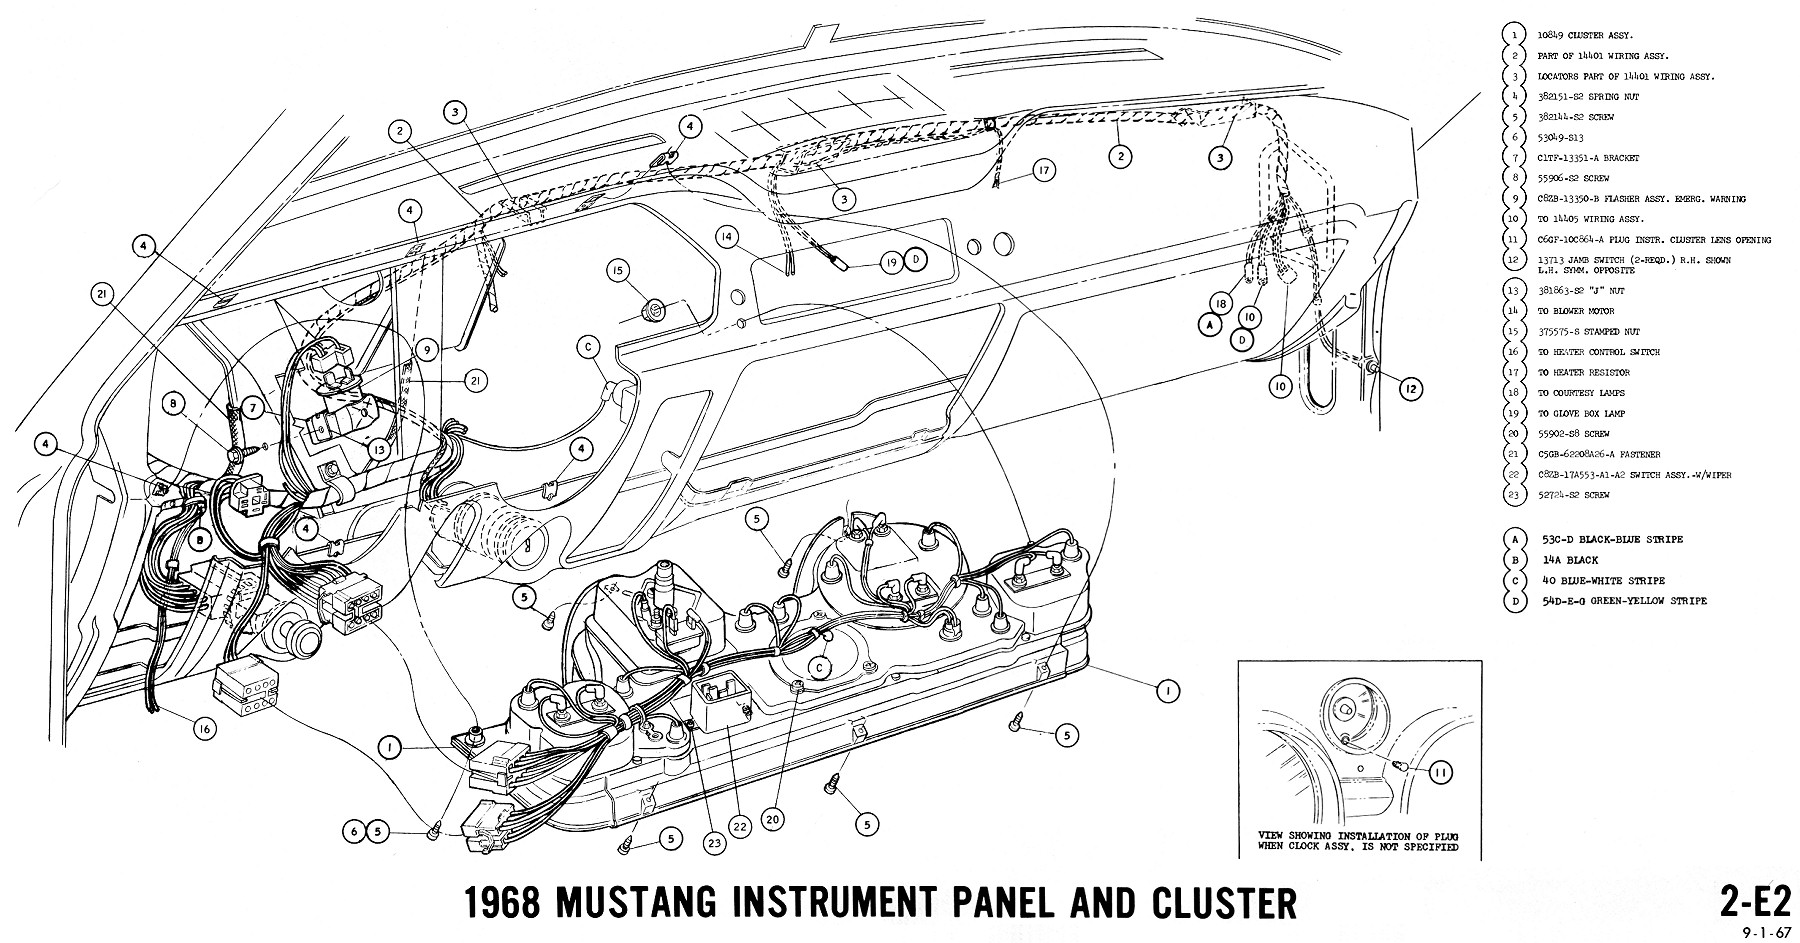 Mustang Turn Signal Wiring Diagram Also 1966 Under Dash 50 Rv Plug Cheater 220v Horn Relay 68 Instrument Cluster Enthusiast Rh Rasalibre Co